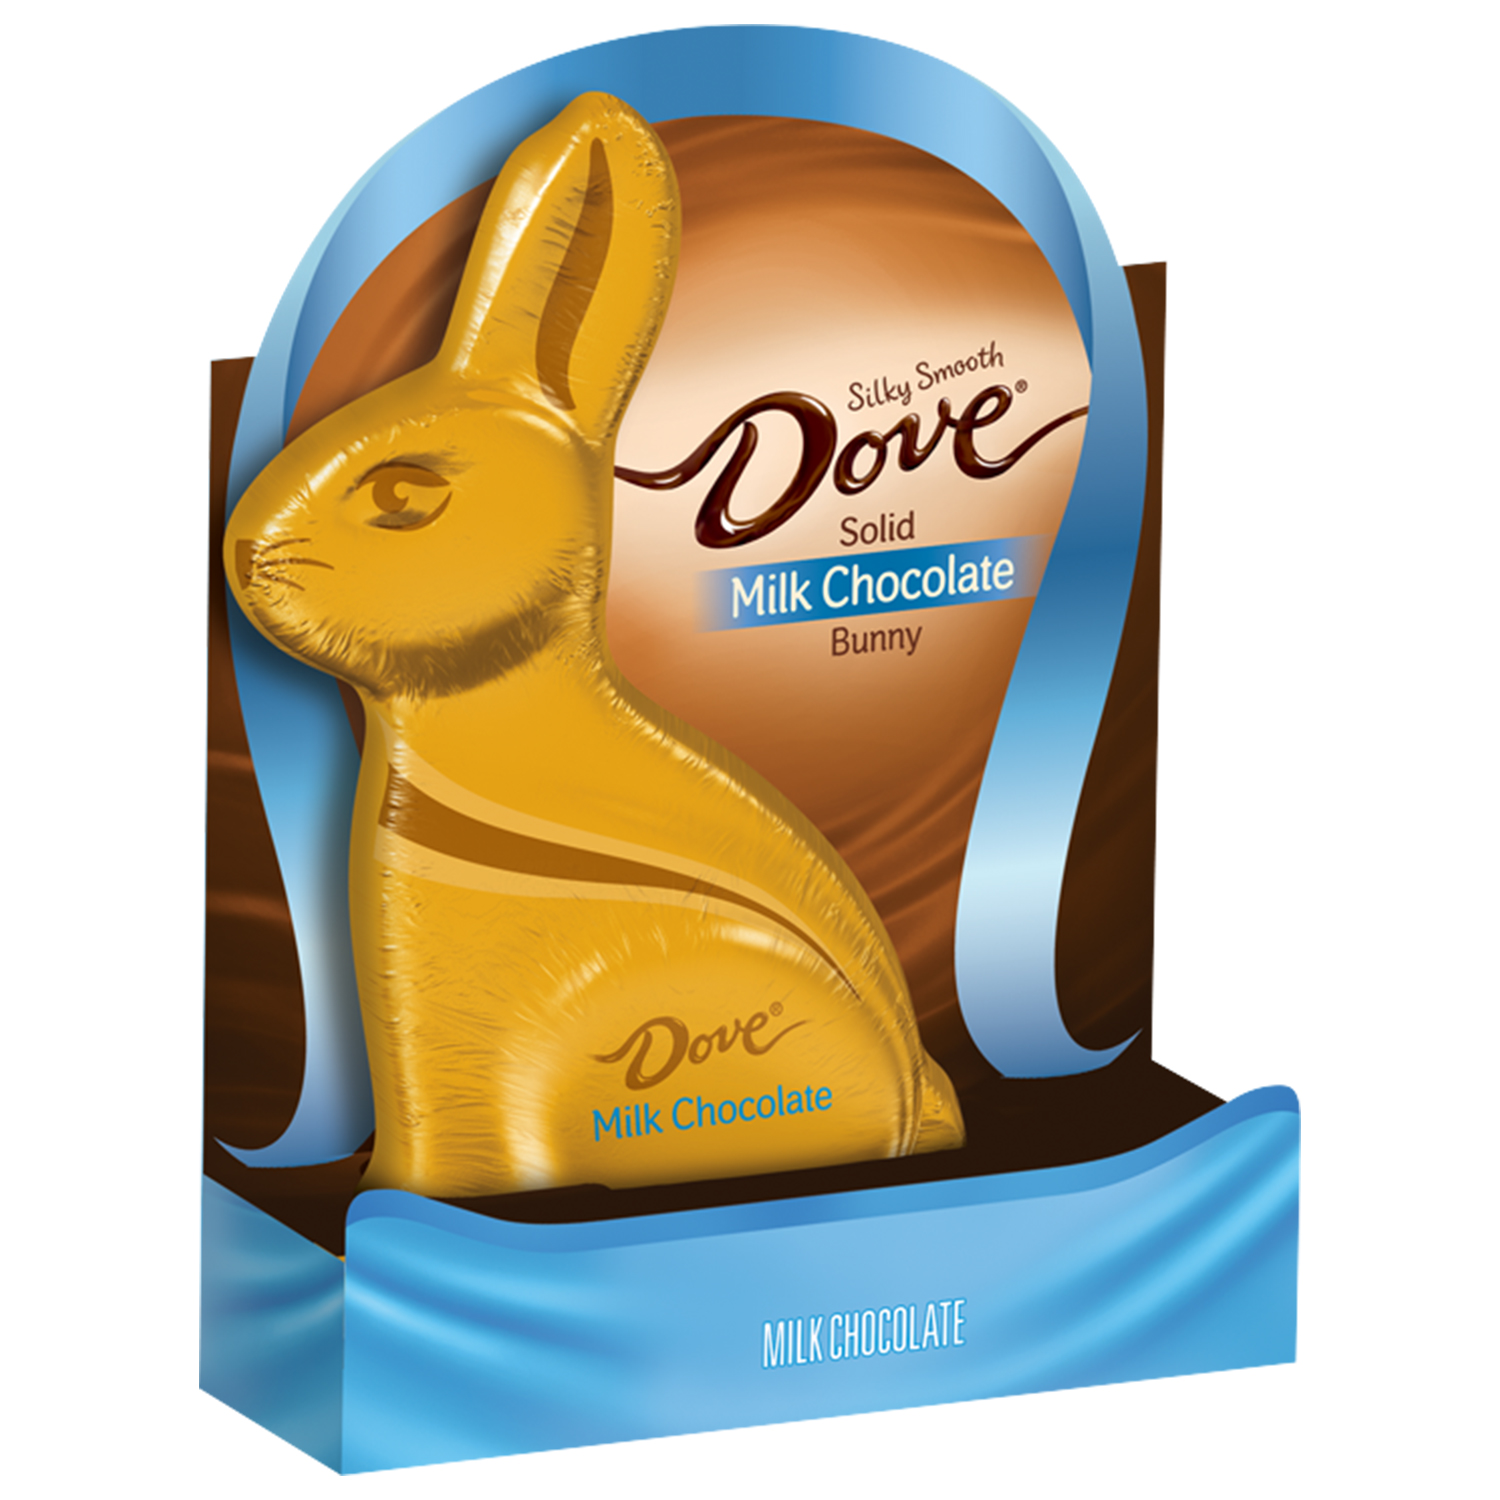 DOVE Easter Milk Chocolate Candy Solid Easter Bunny Box, 4.5 oz ...